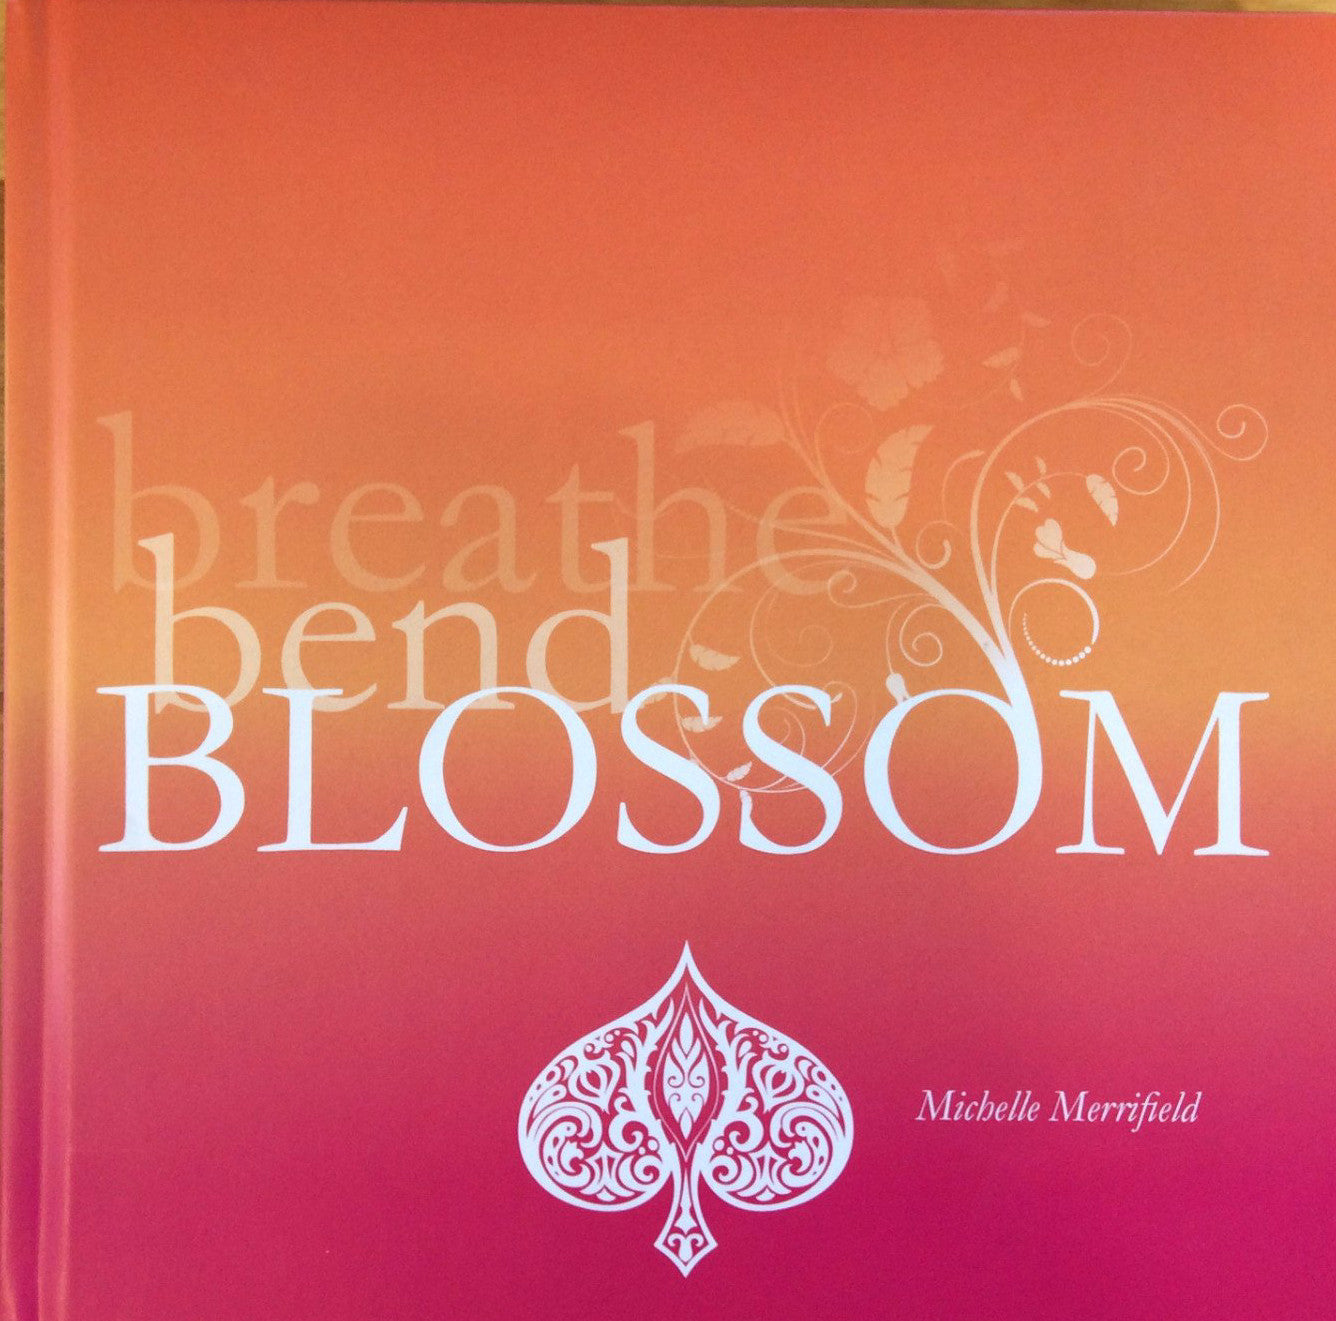 Breathe, Bend & Blossom